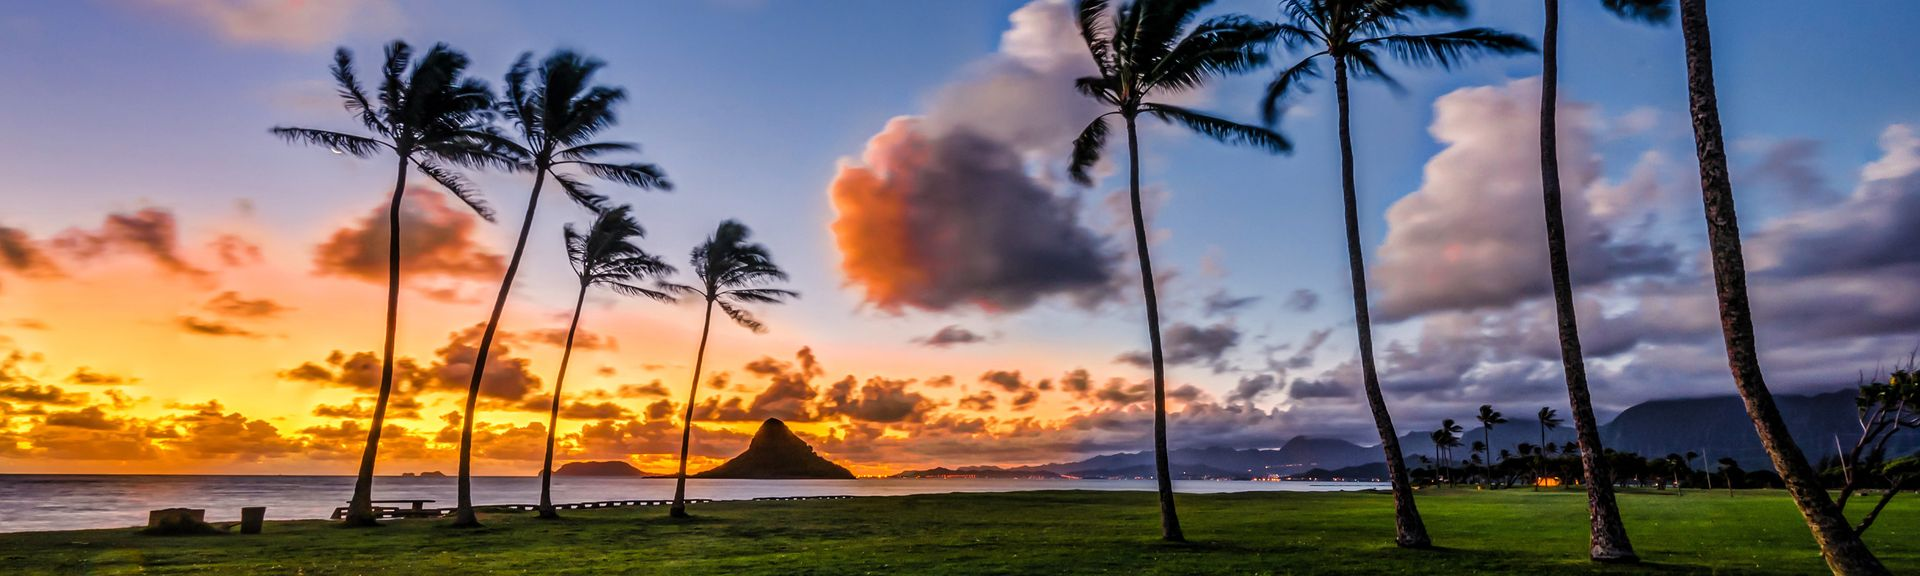 Kaneohe, Hawaii, USA